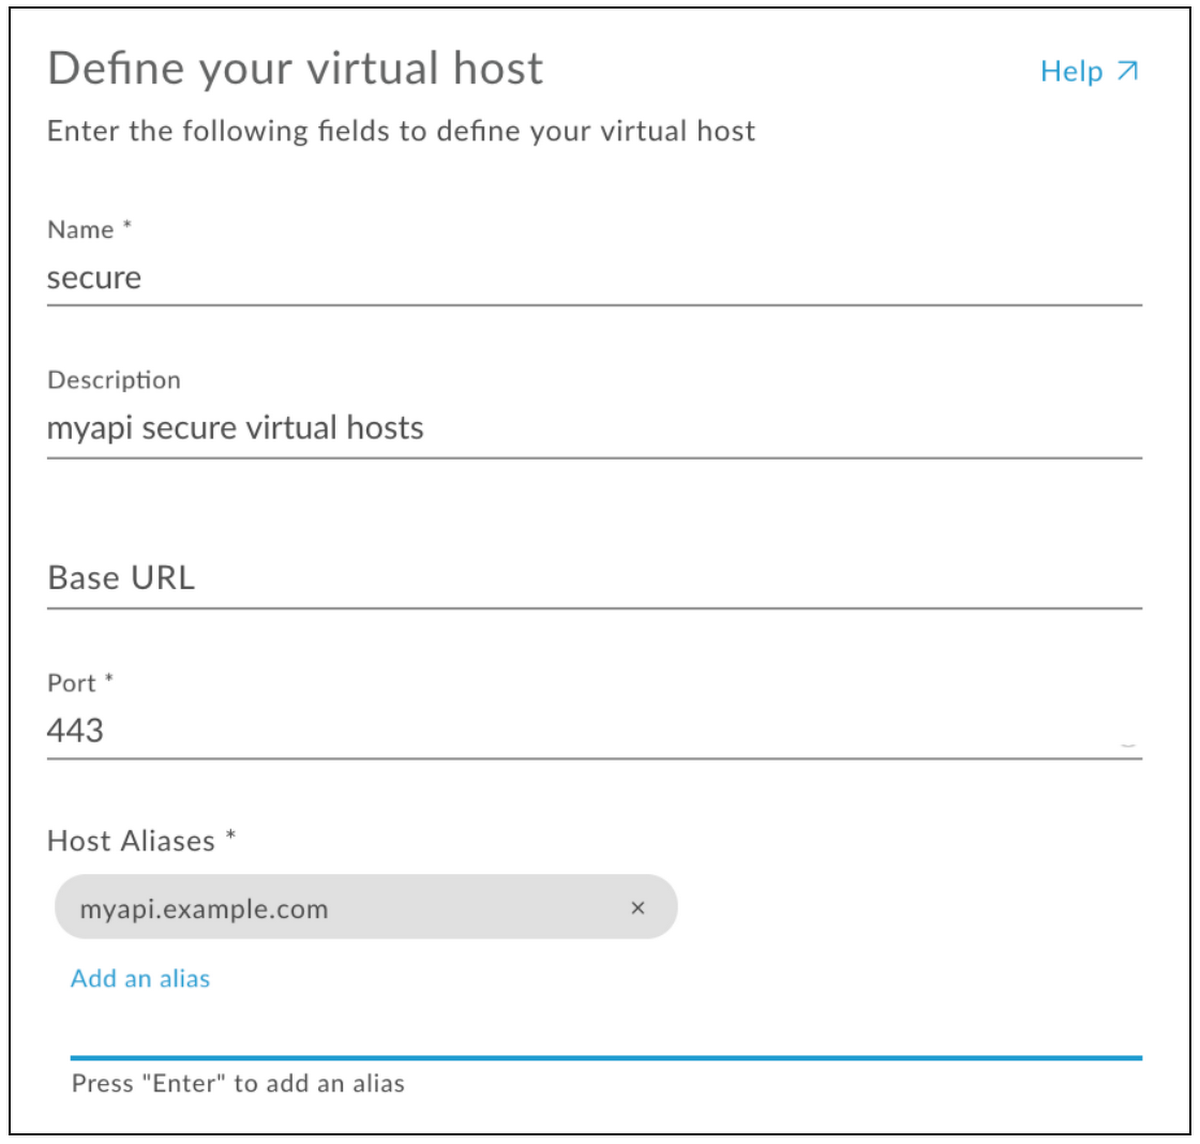 Define your virtual host